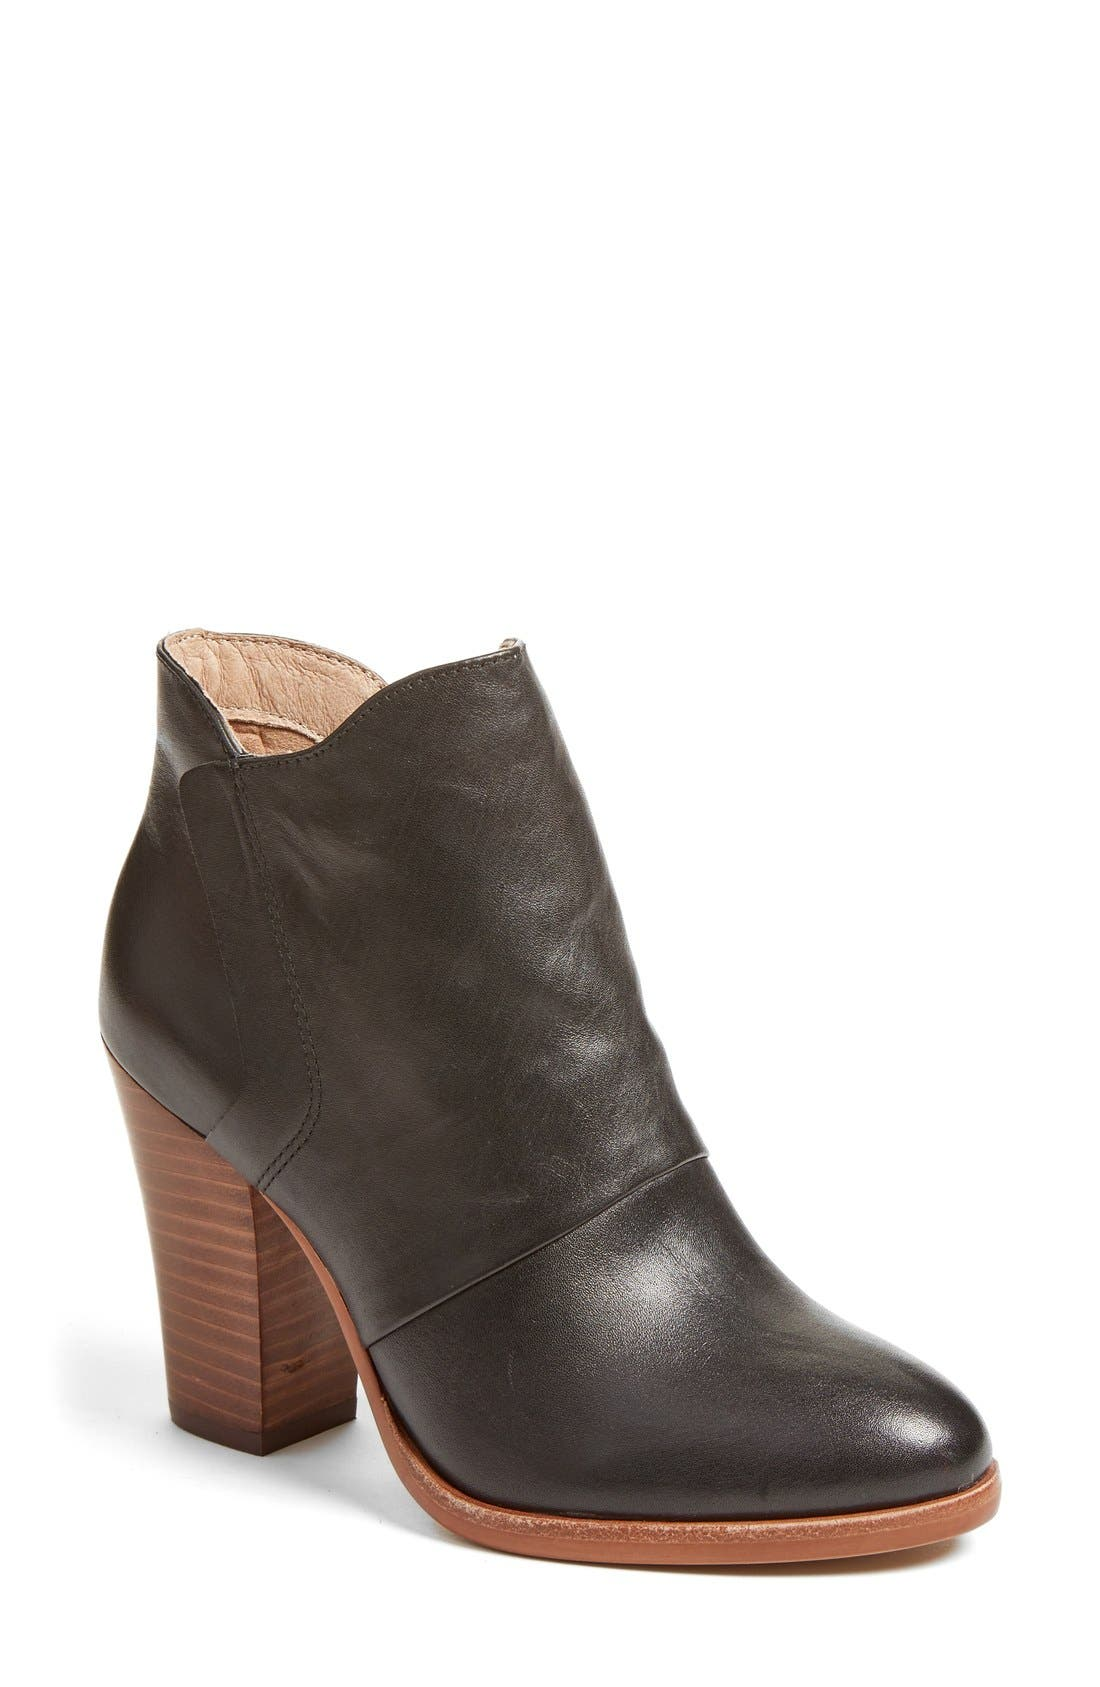 Alternate Image 1 Selected - Halogen® 'Brynn' Bootie (Women)